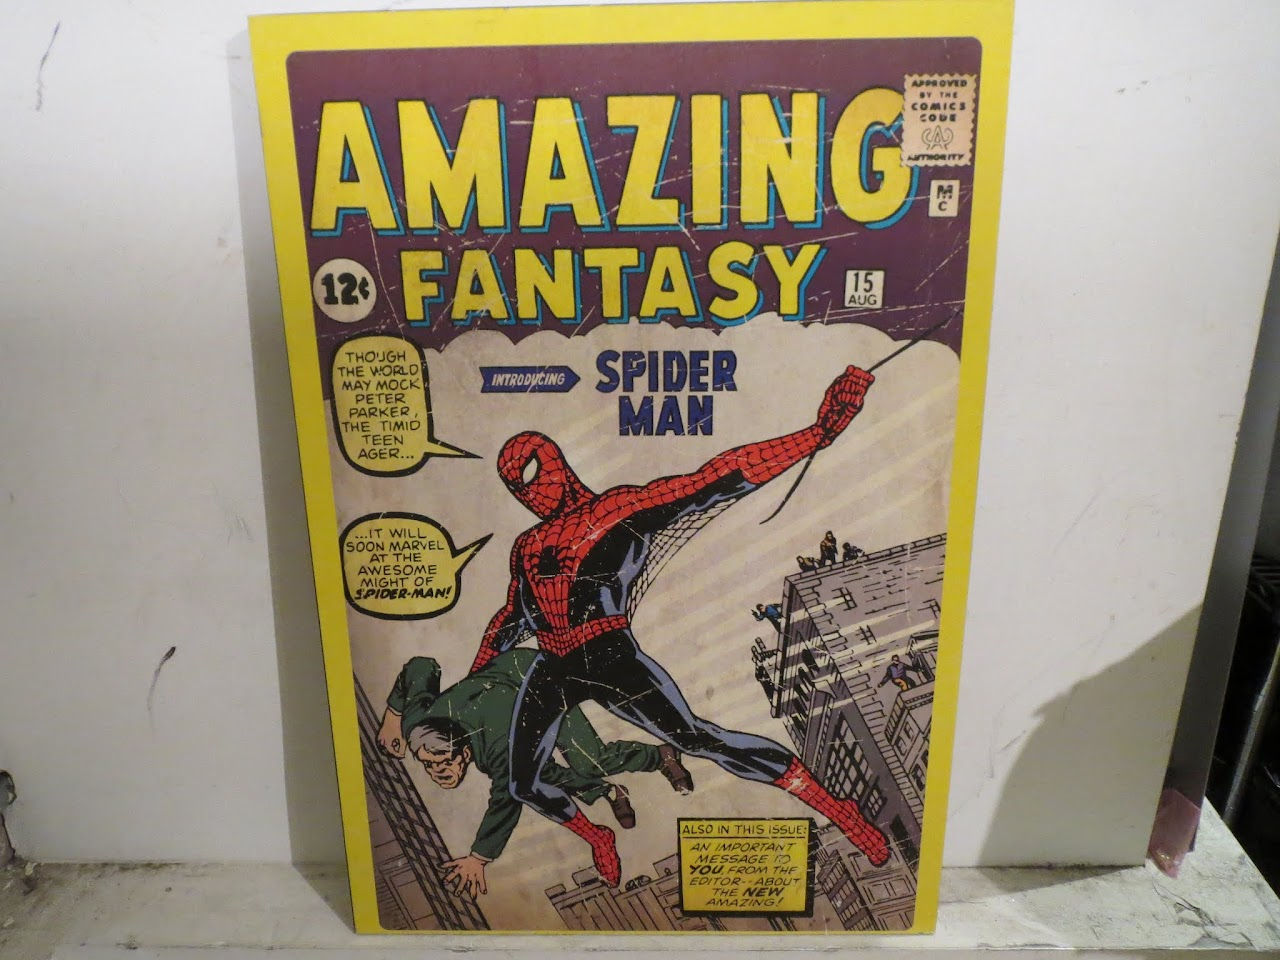 Amazing Fantasy (Introducing Spider Man) Poster